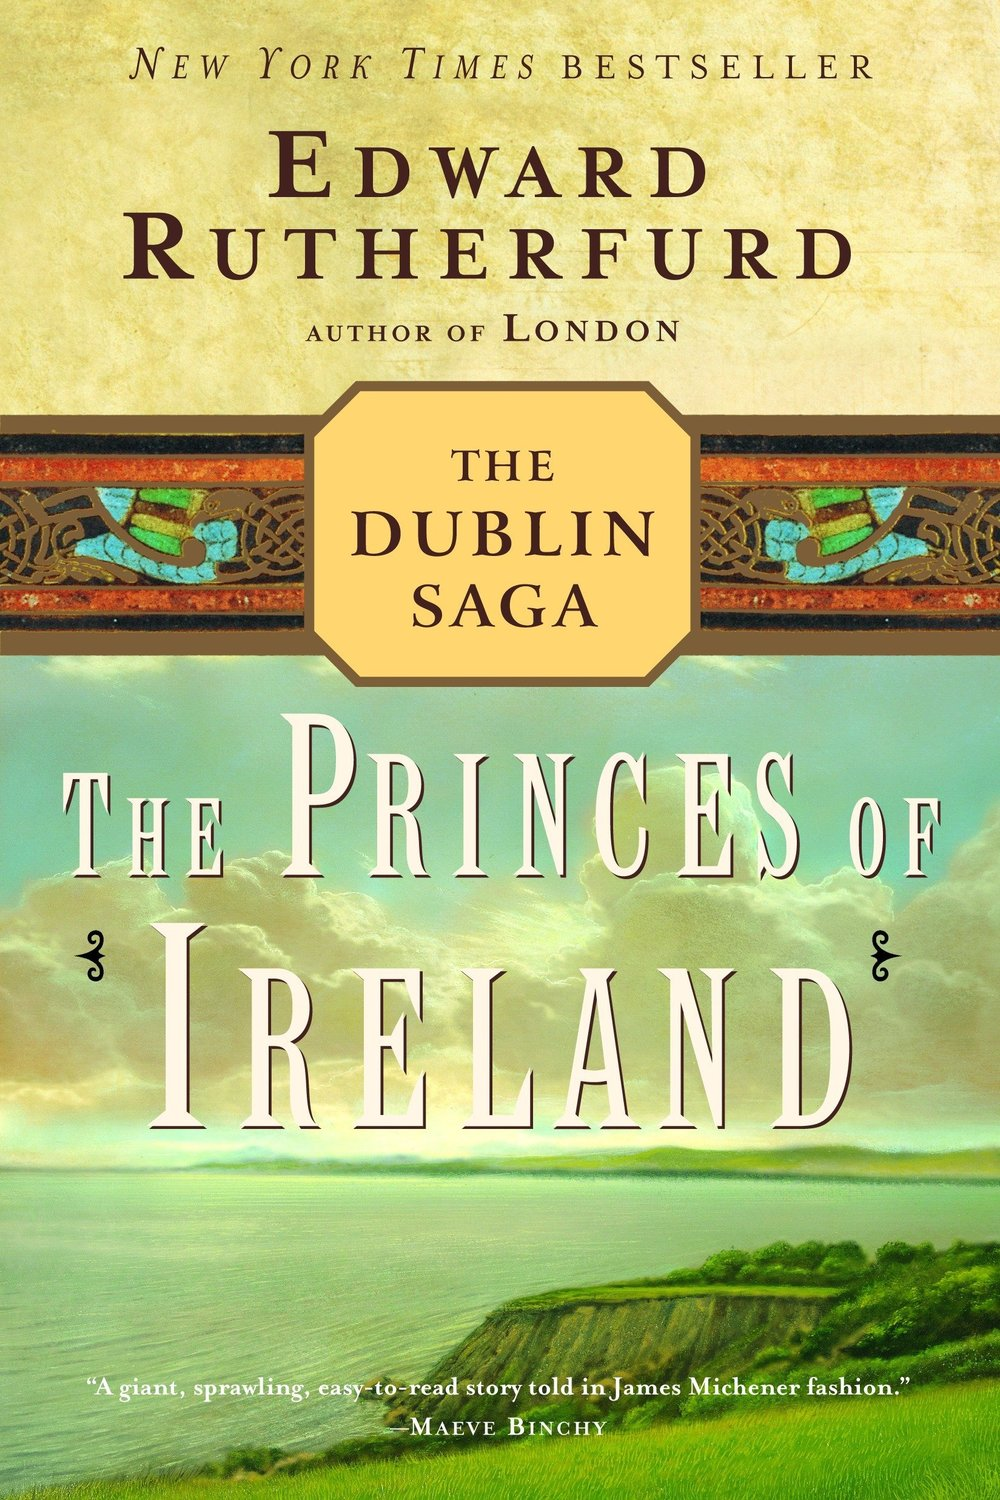 5 Books to Read Set in Ireland in Celebration of St. Patrick's Day